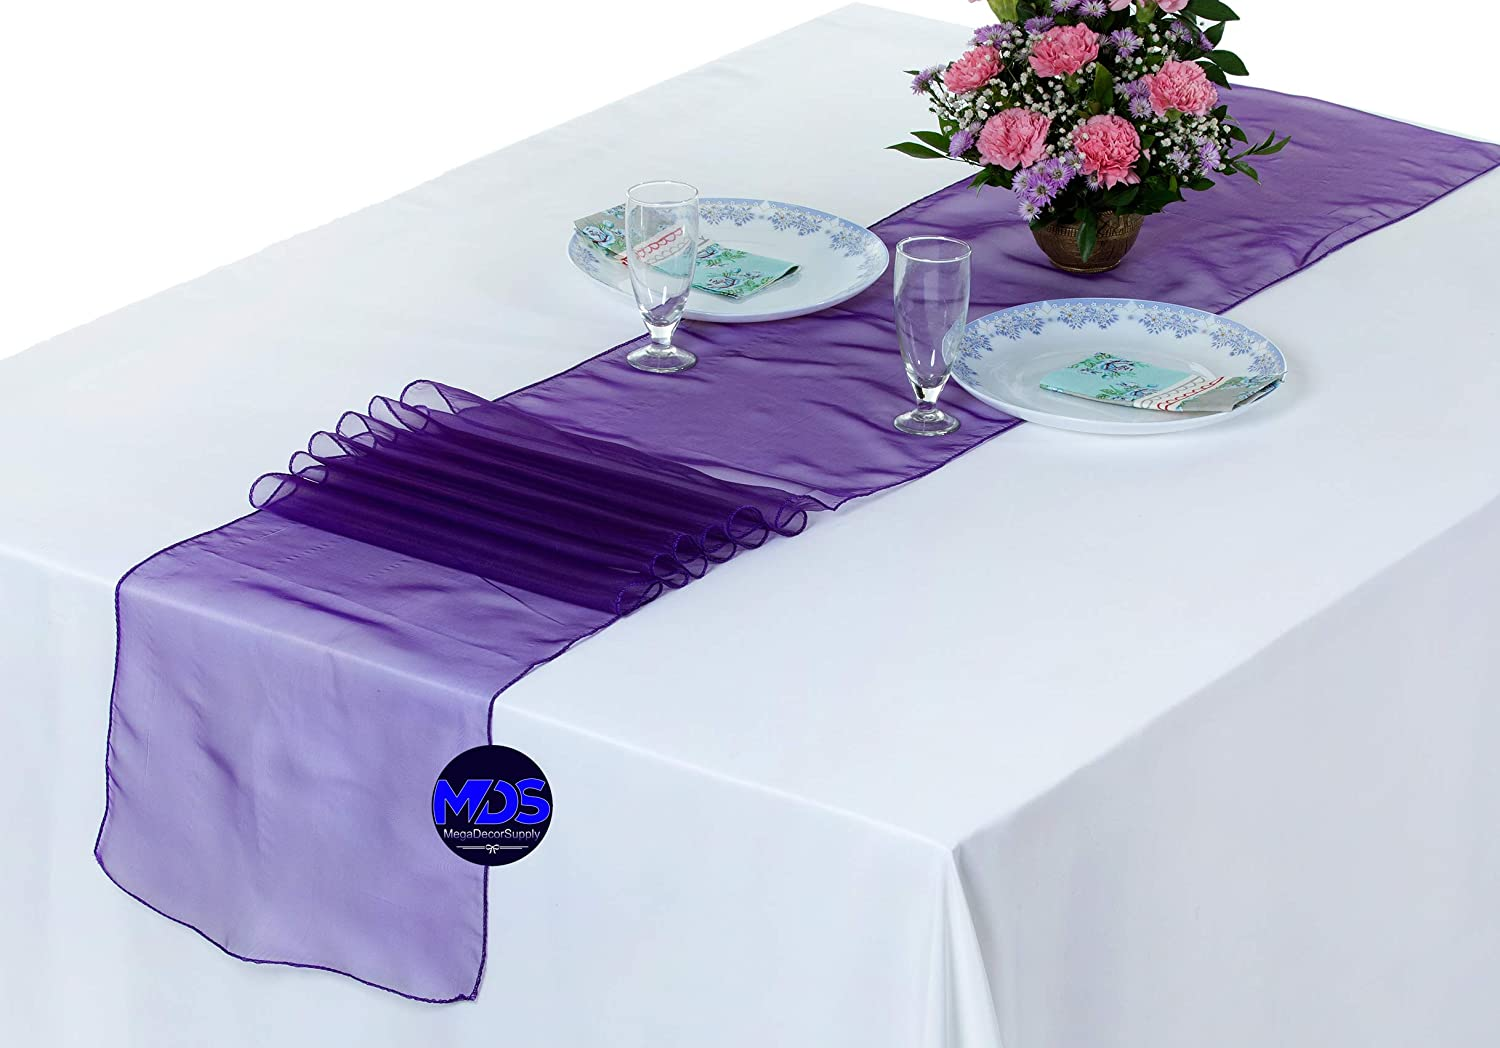 mds Pack of 25 Classic Wedding 12 x 108 Limited time cheap sale We Organza Runner for inch Table